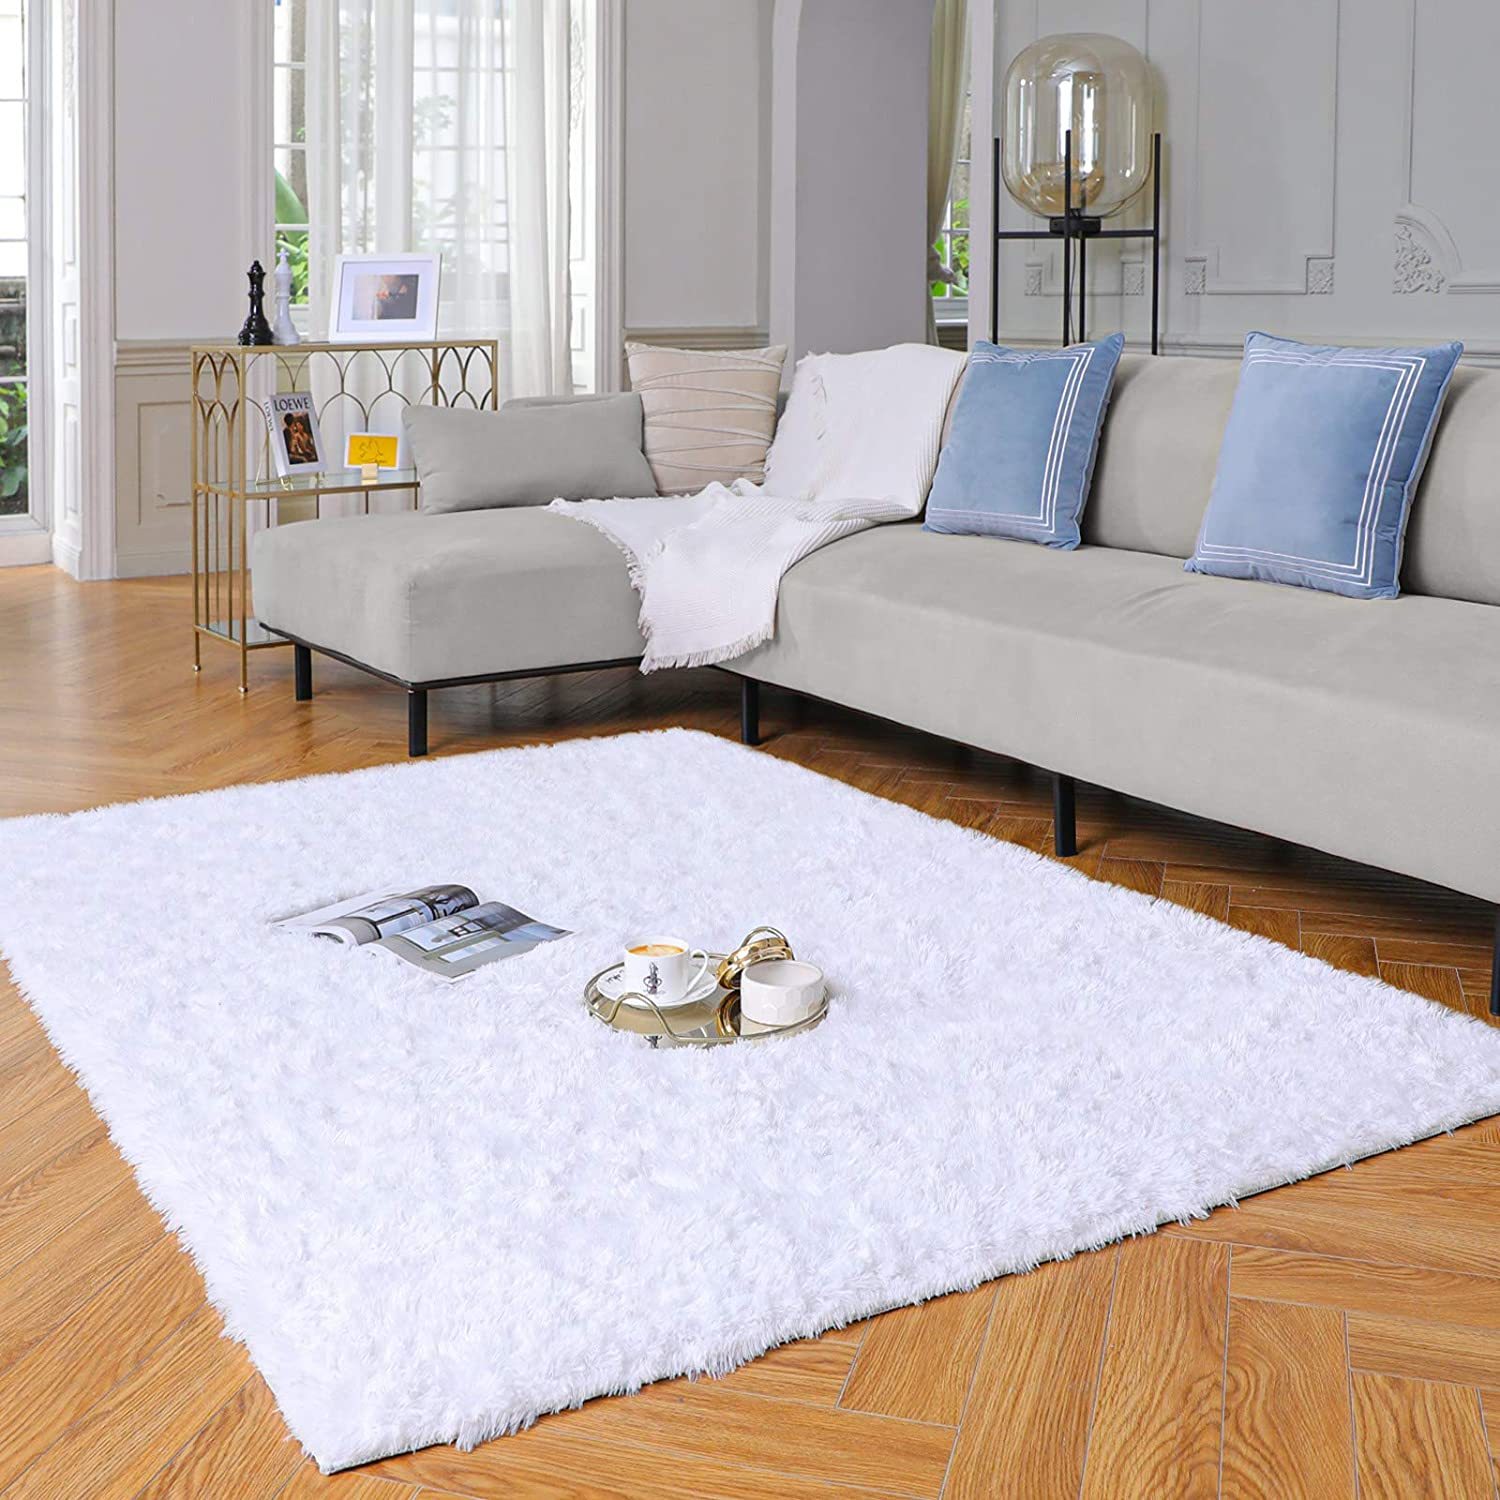 Yome Machine Washable Area Rug, Fuzzy Soft Carpet with Durable Edges, Home Decor Floor Rug for Your Home's Living Room, Bedroom, Kid's Room, Office, Fluffy Rug 4 x 5.3 Feet, Snow-White.